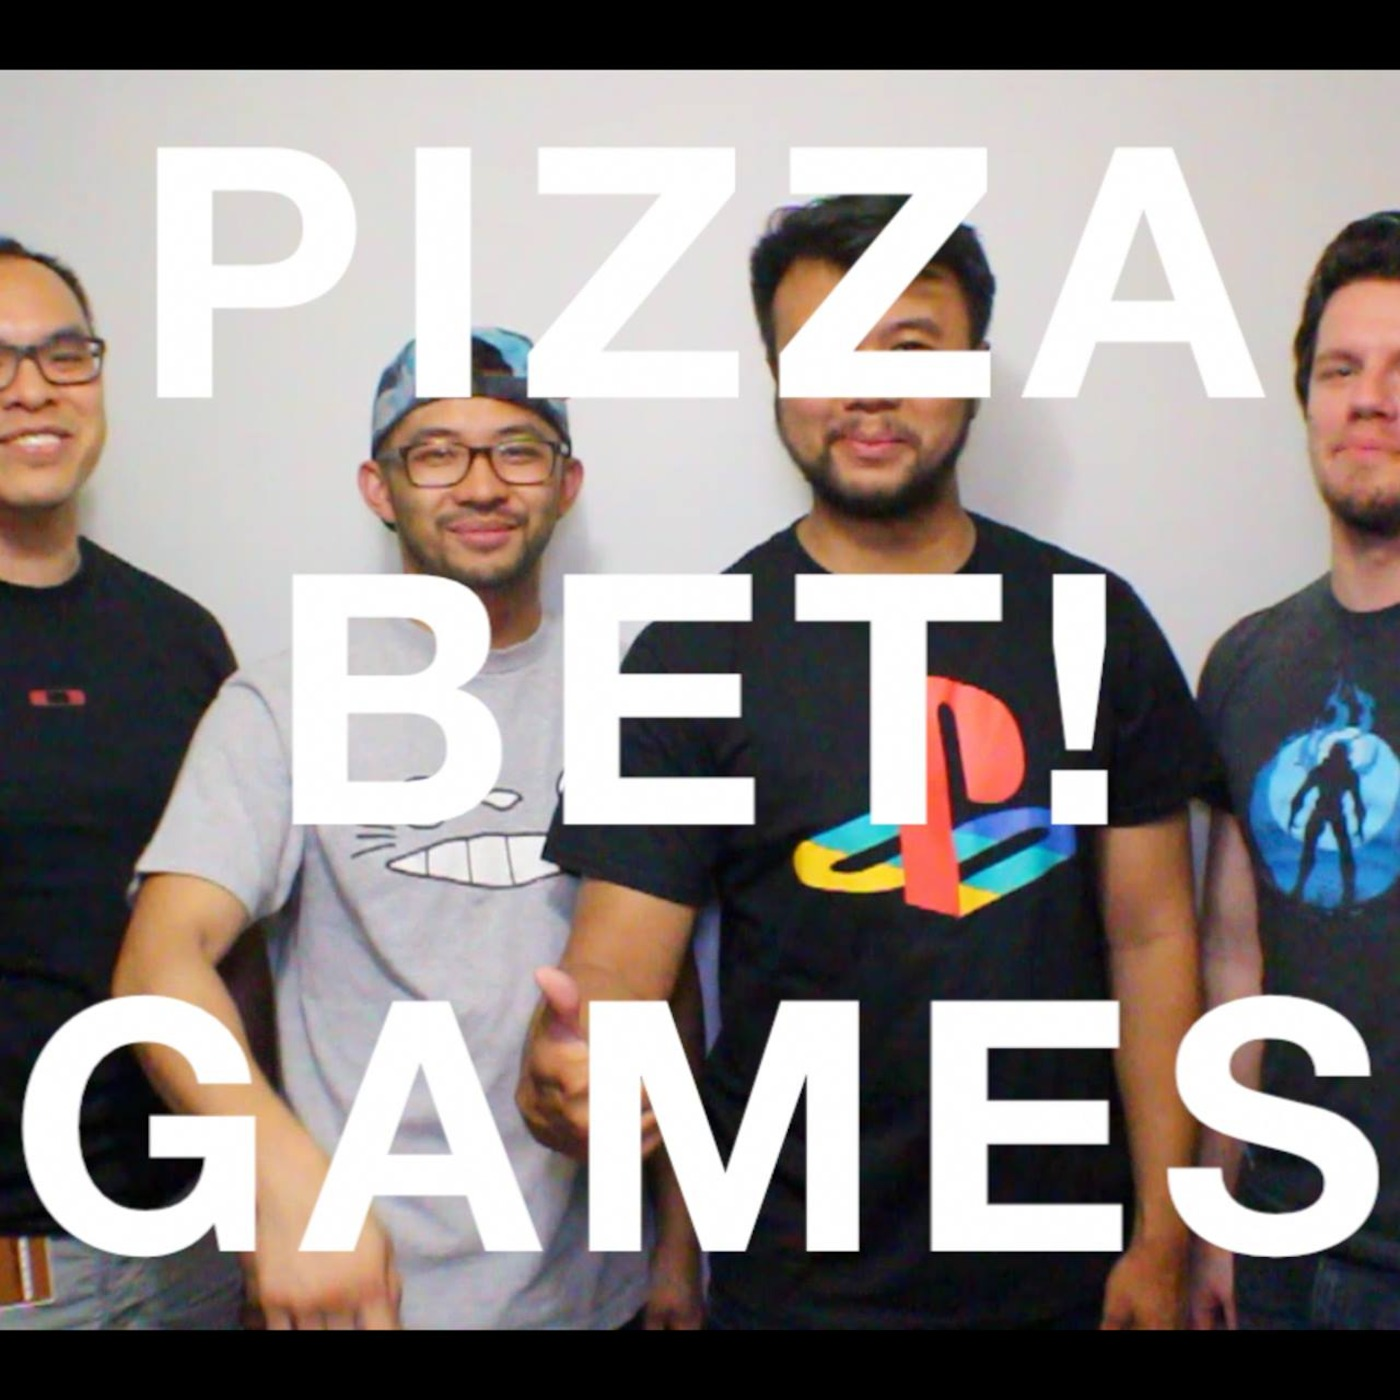 Pizza Bet!cast